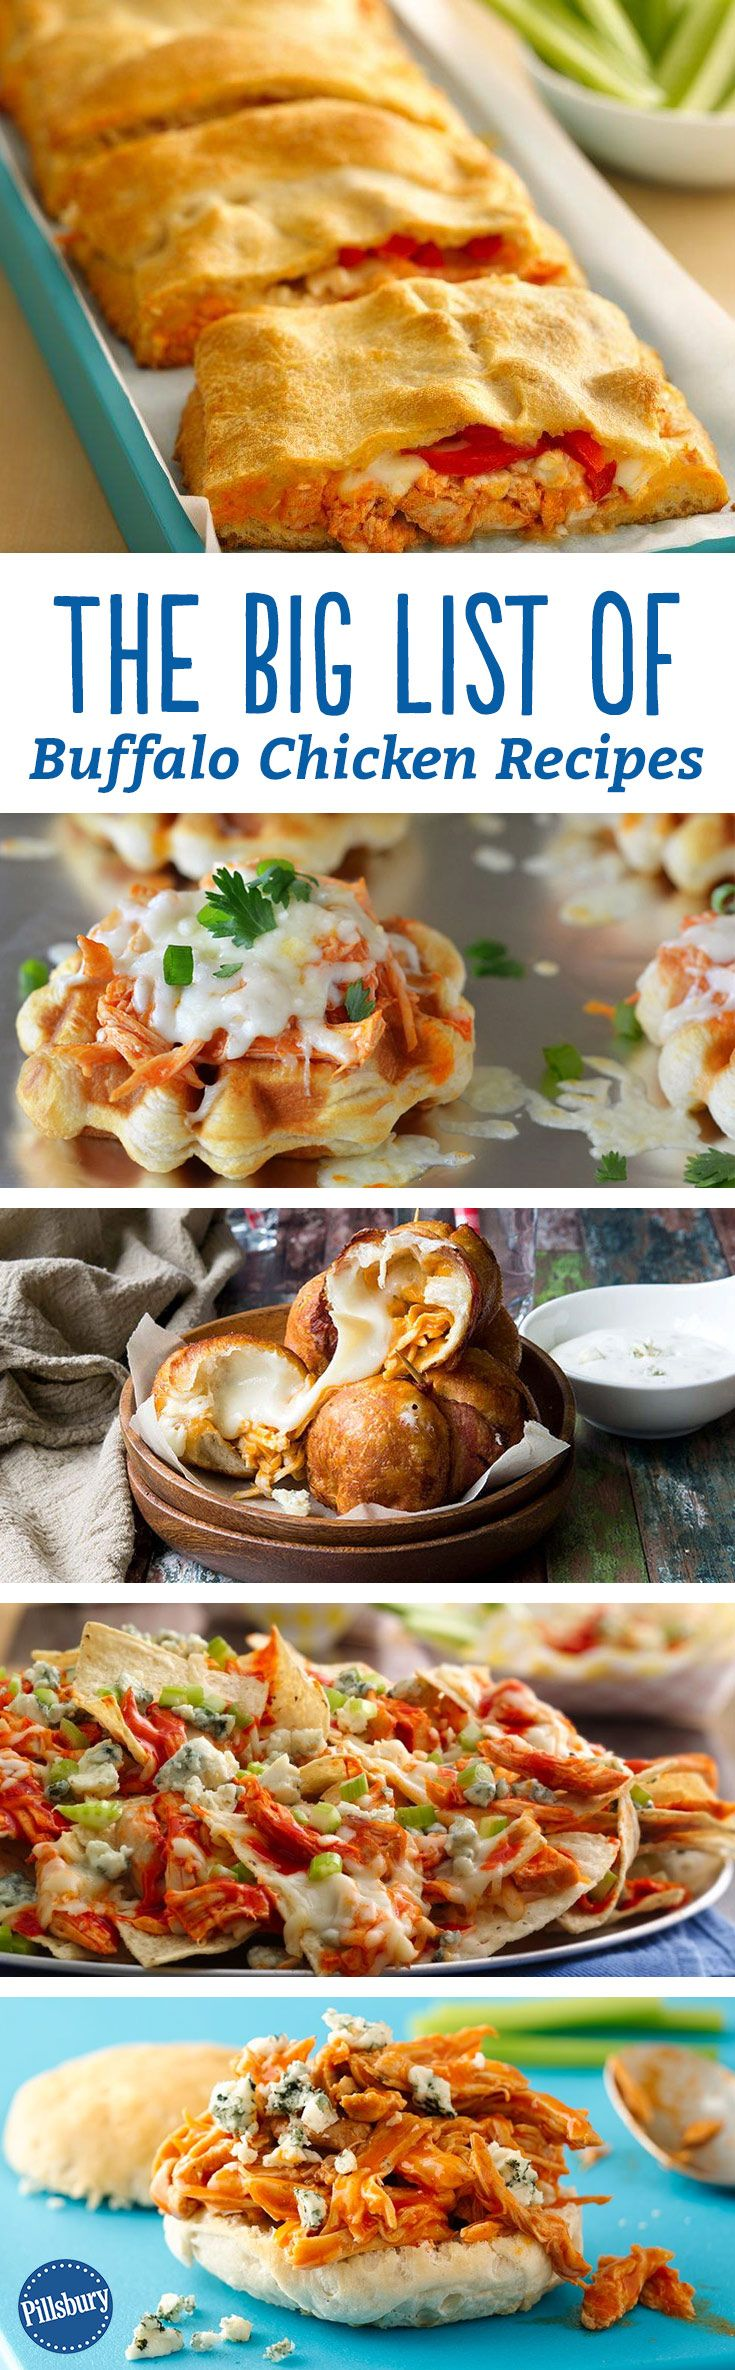 The BIG List of Buffalo Chicken Recipes | Hot sauce ...